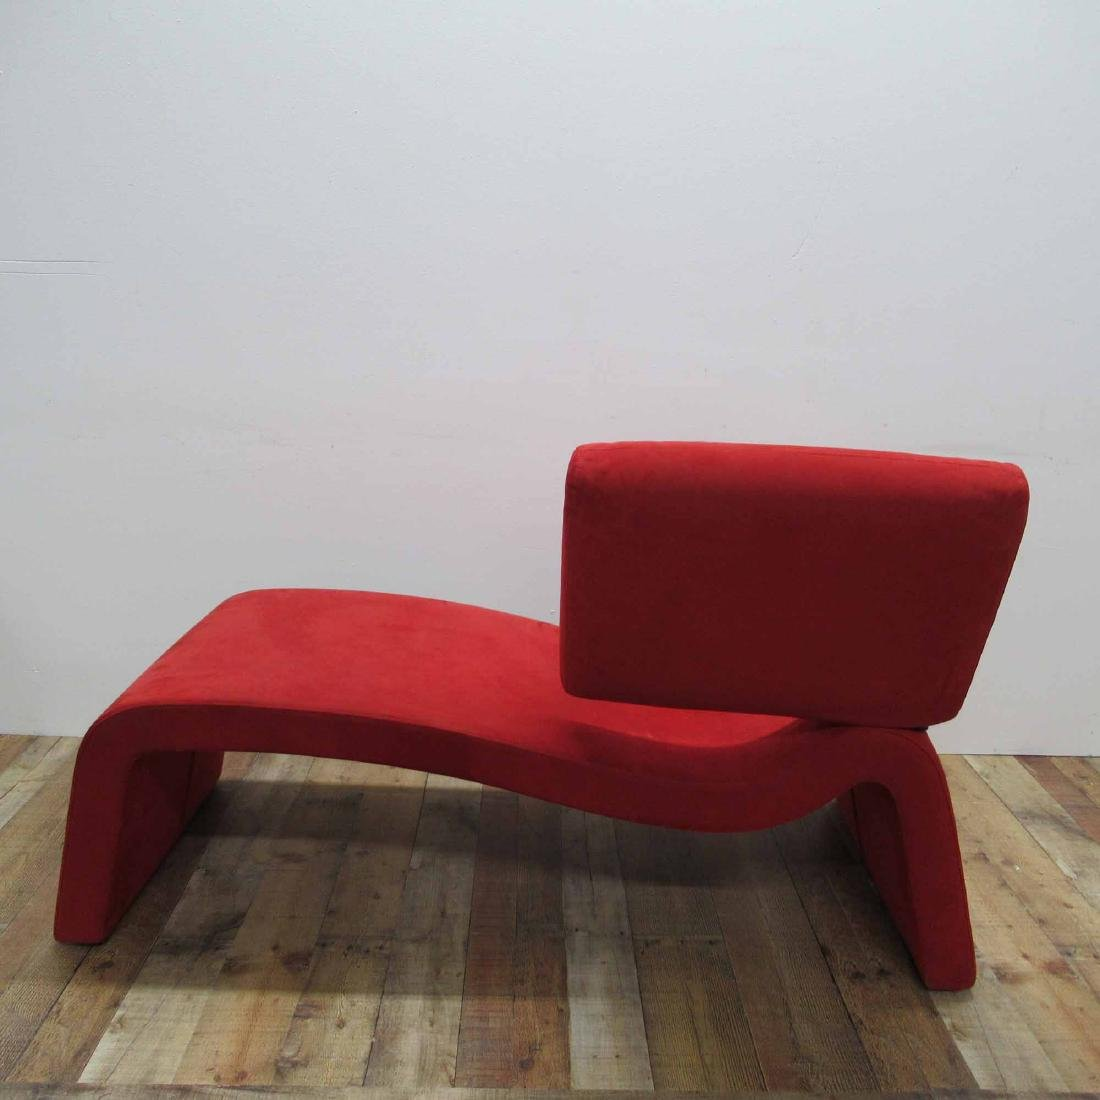 RED SUEDE UPHOLSTERED CHAISE LOUNGE CHAIR - 4